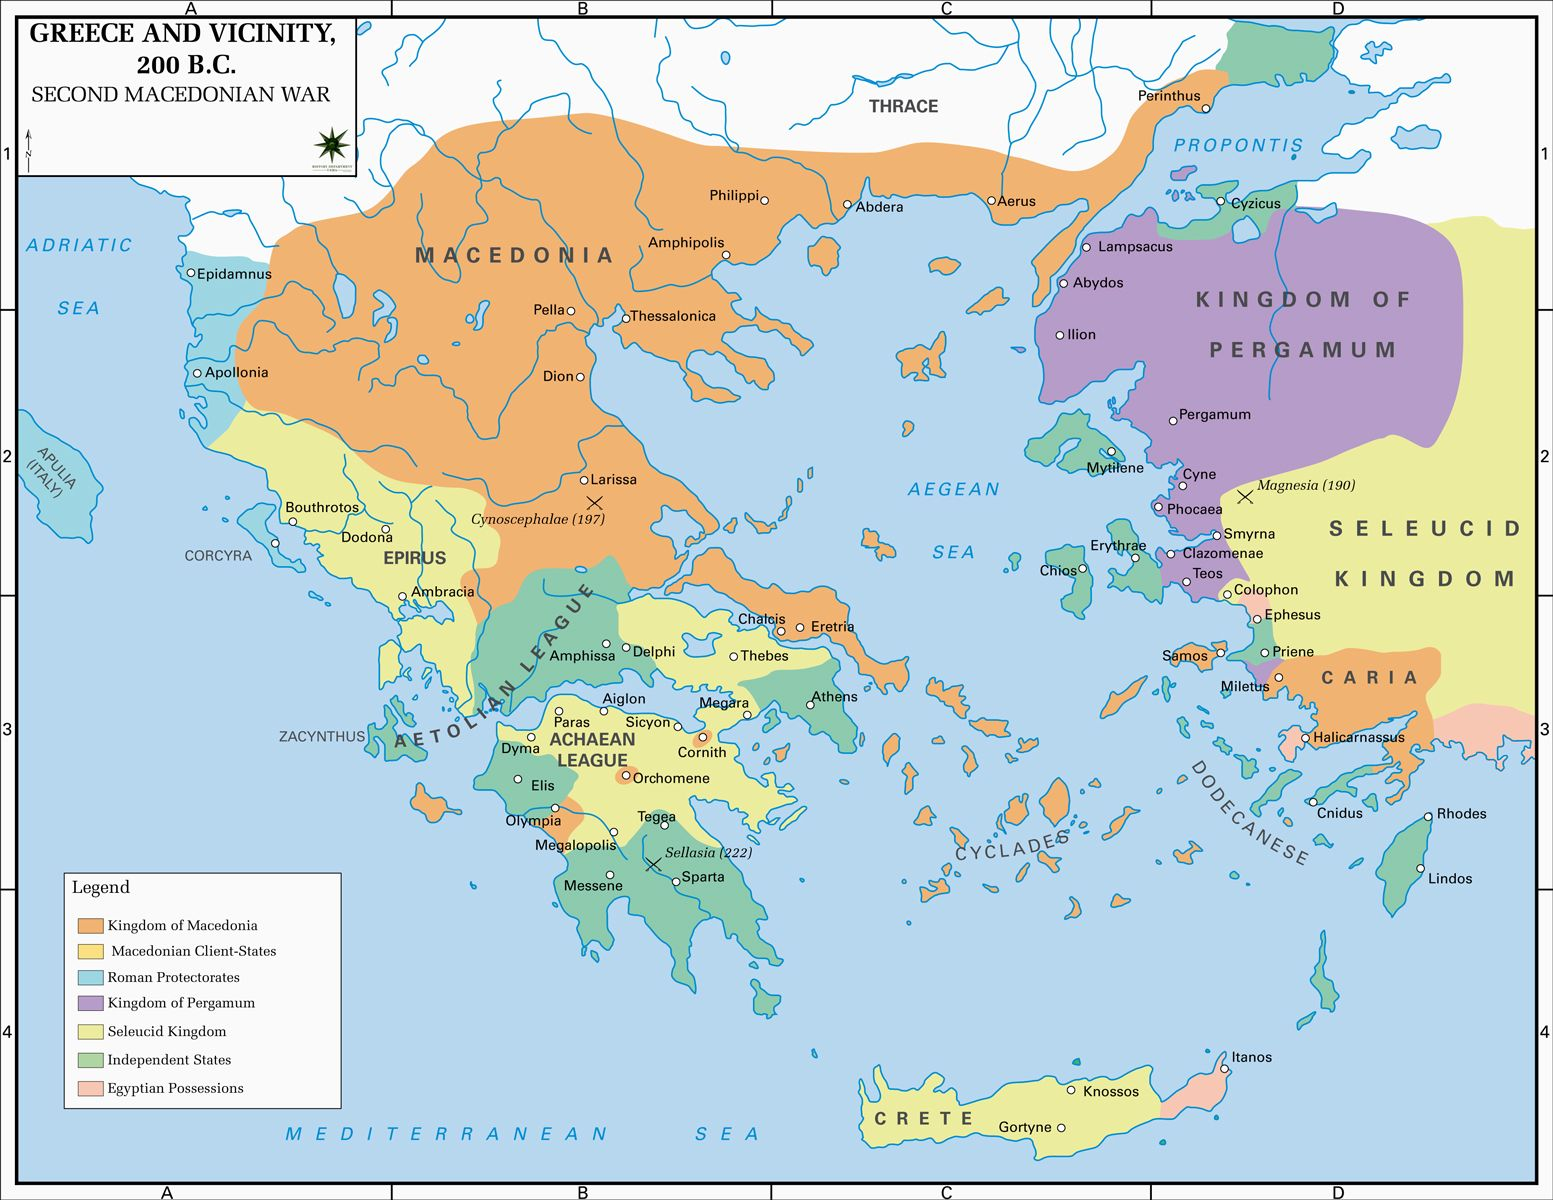 Map Of Greece And Vicinity 200 Bc Greece Map Historical Maps